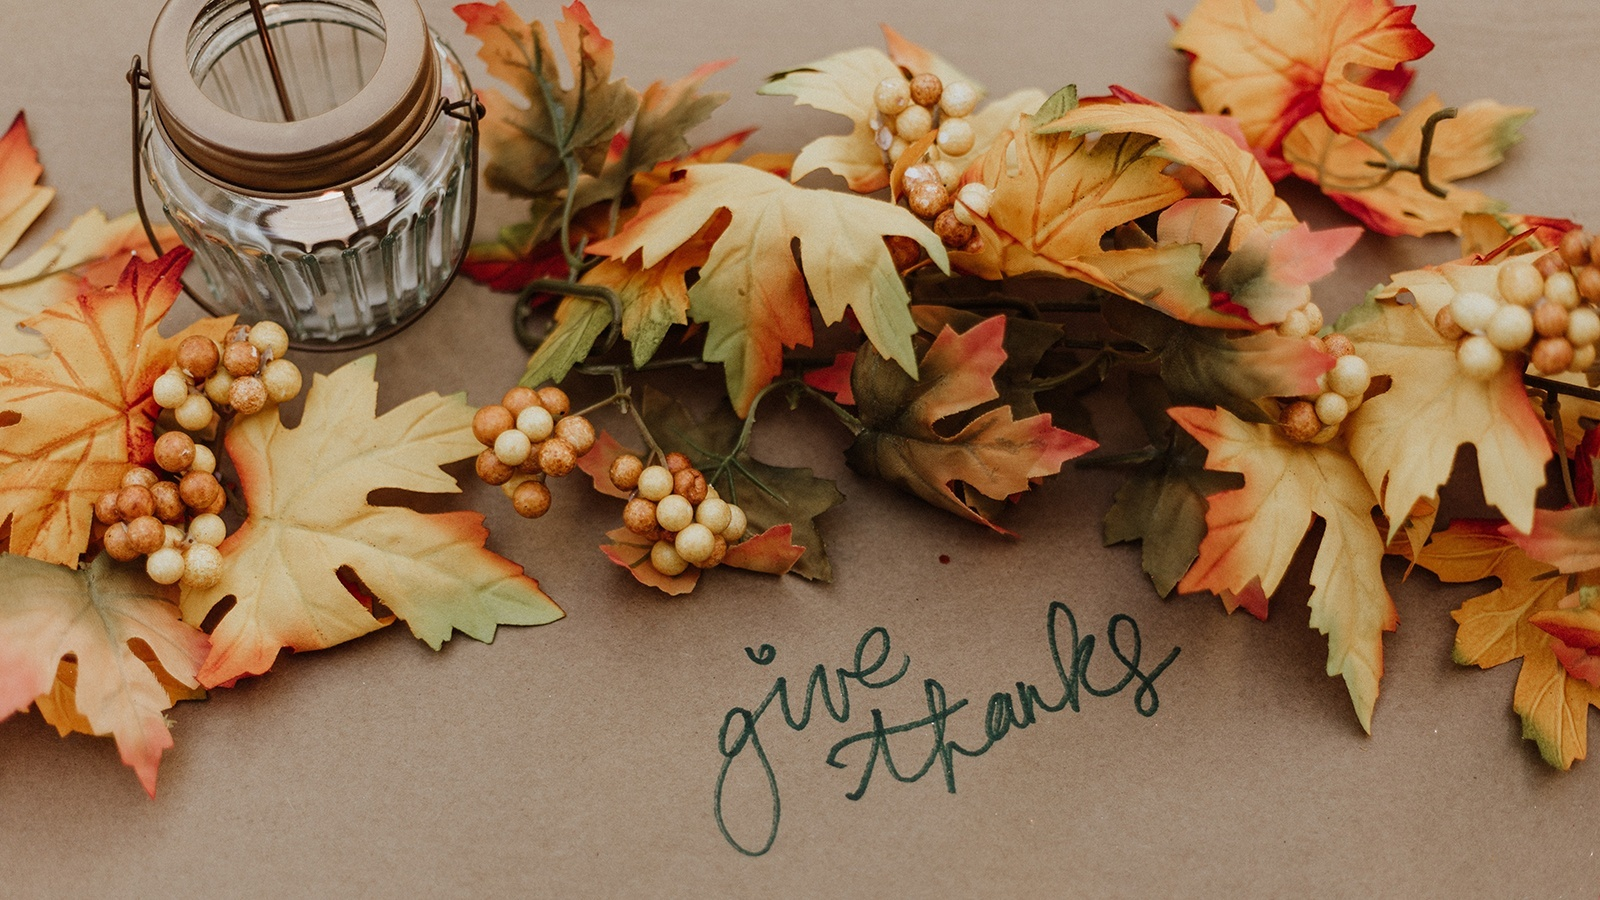 Image of fall leaves and a candle with the text 'give thanks.'